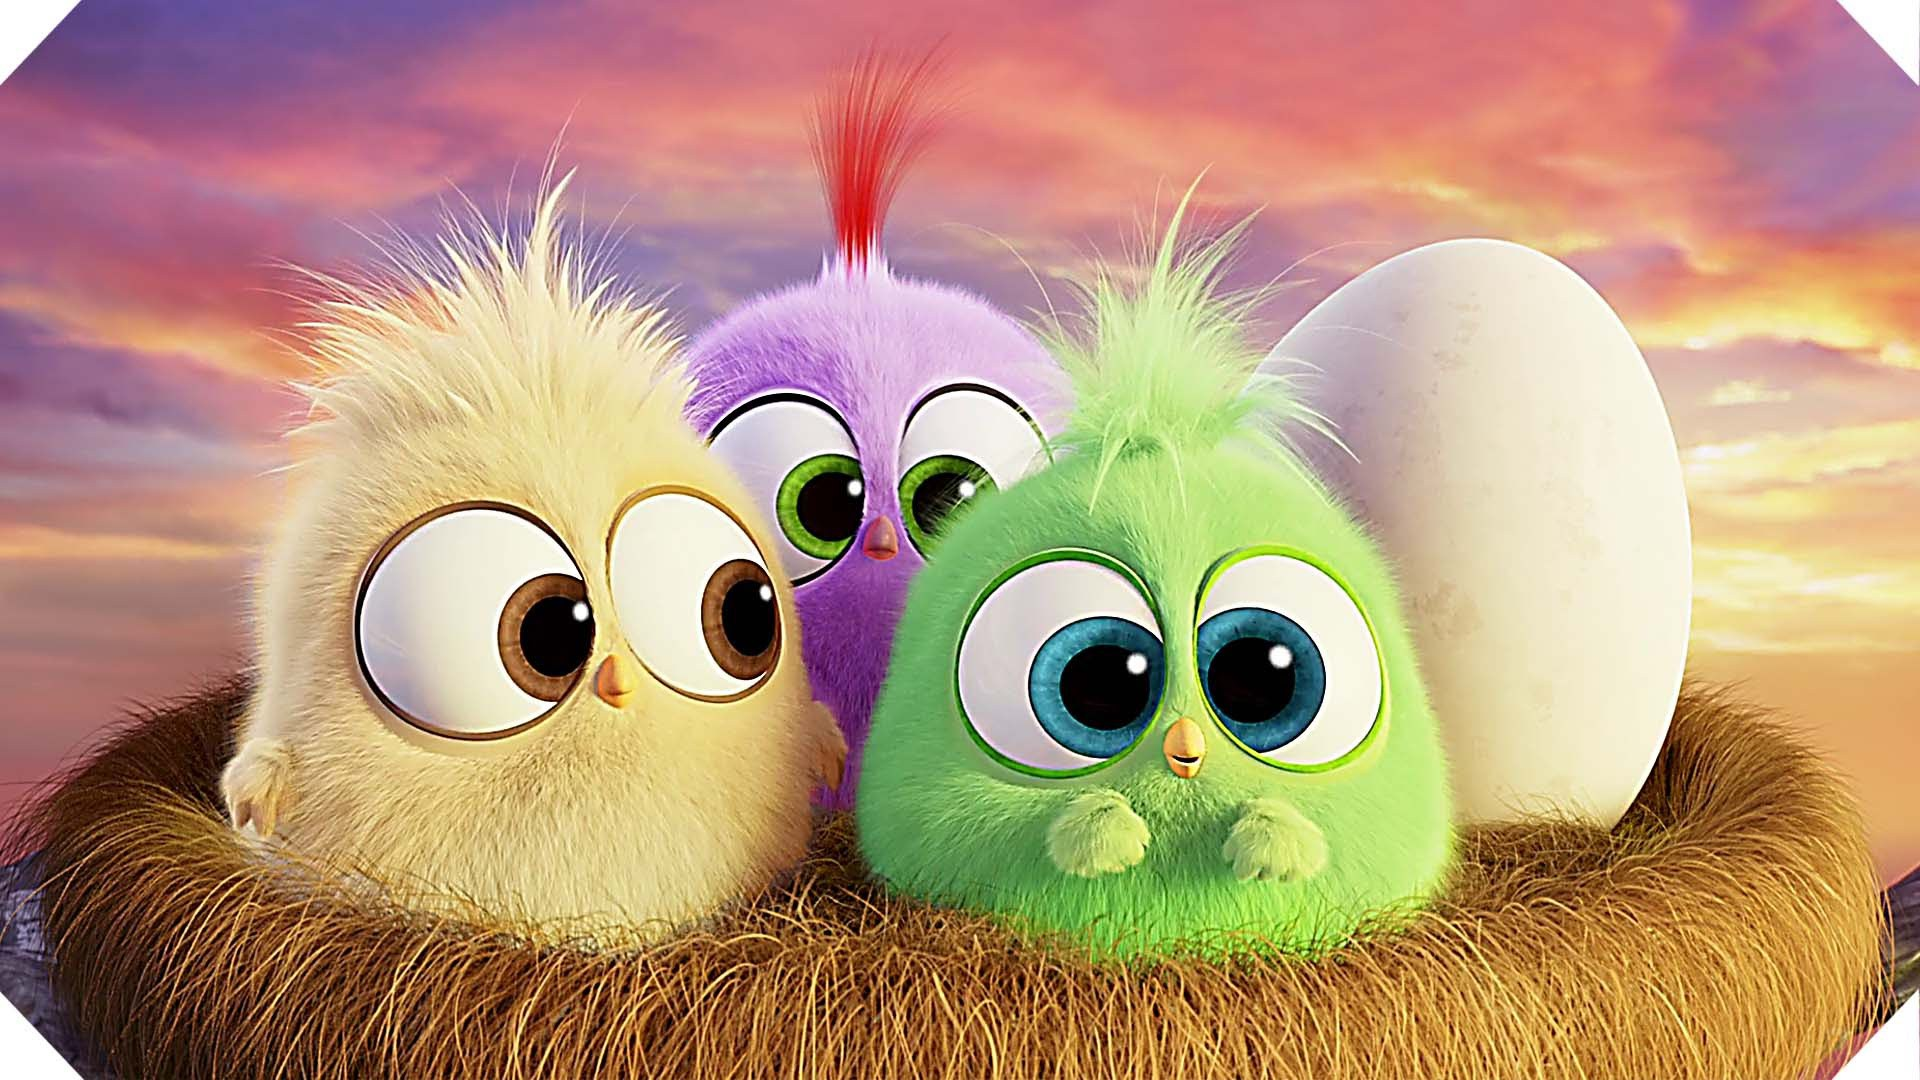 4k Angry Birds Desktop Wallpaper For Pc - Angry Birds Wallpaper Hd , HD Wallpaper & Backgrounds